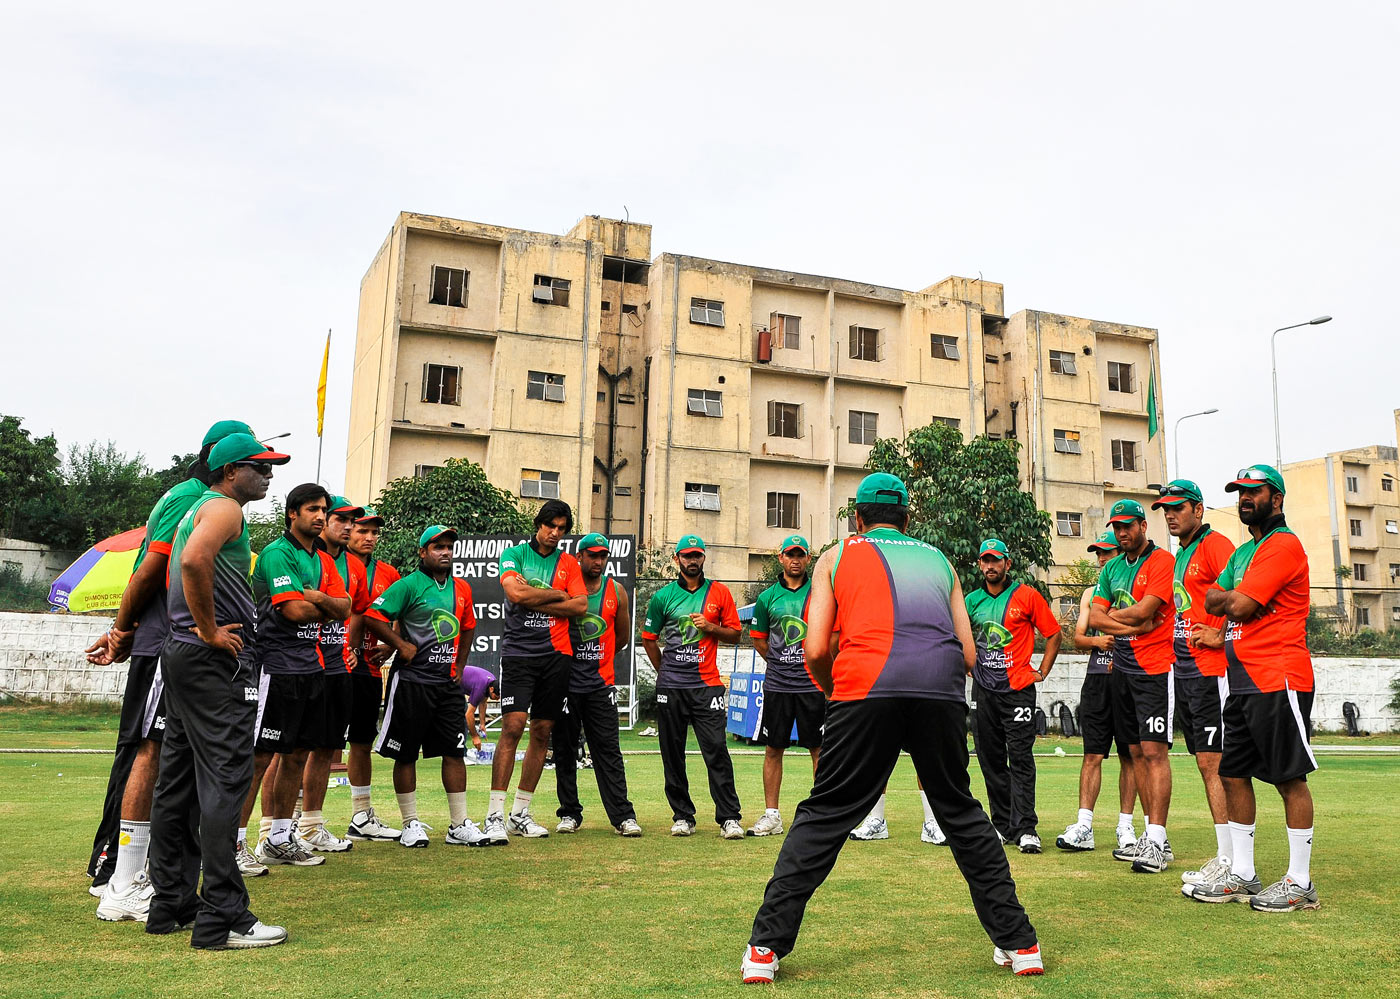 The Afghanistan side train in Islamabad in 2011, when they became the first international side to tour Pakistan after the attack on the Sri Lankan team in 2009